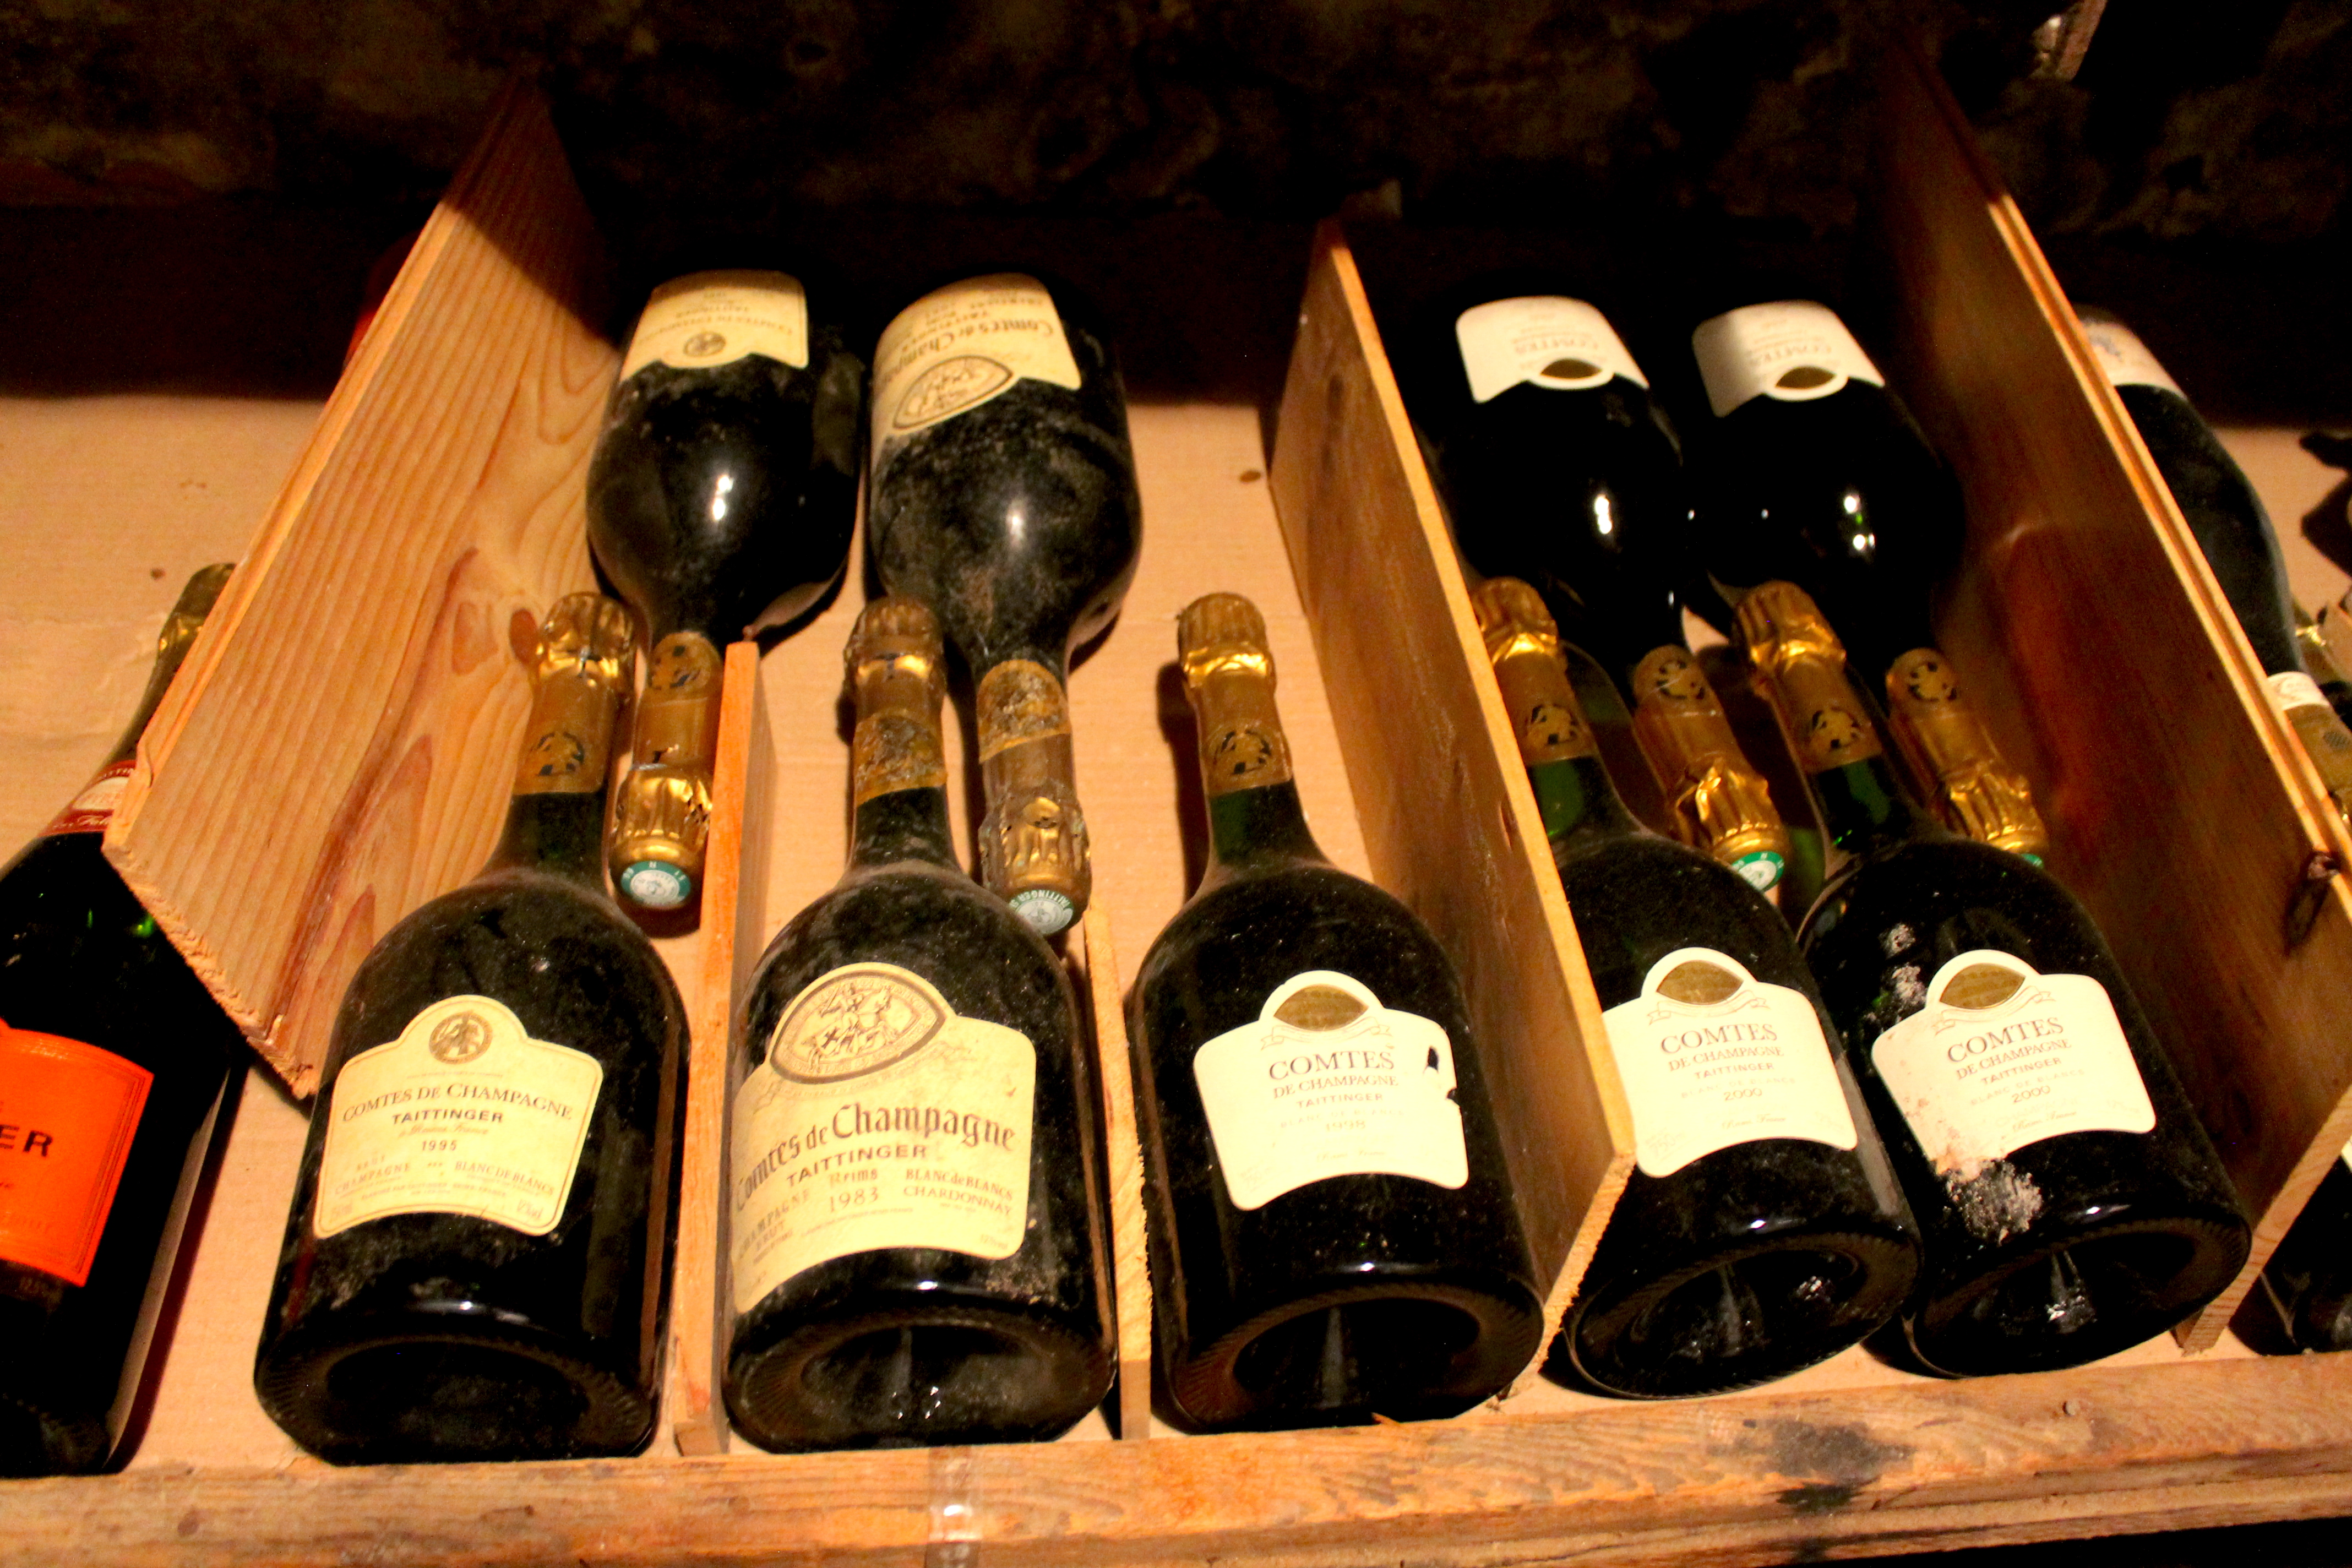 champagne-cellar-bonne-etape-lustforthesublime